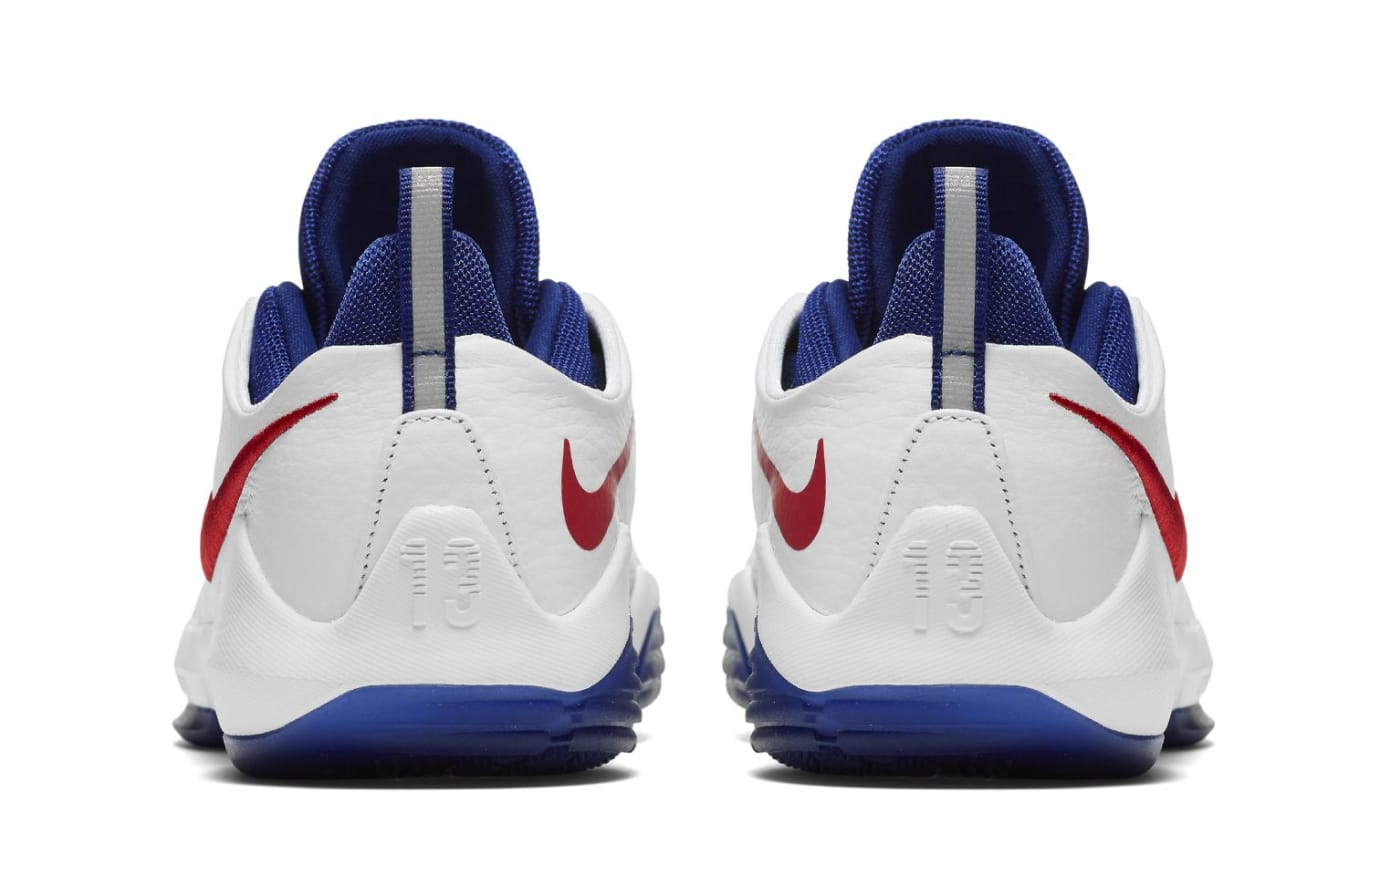 Nike PG 1 GS White/University Red-Deep Royal Blue (Heel)